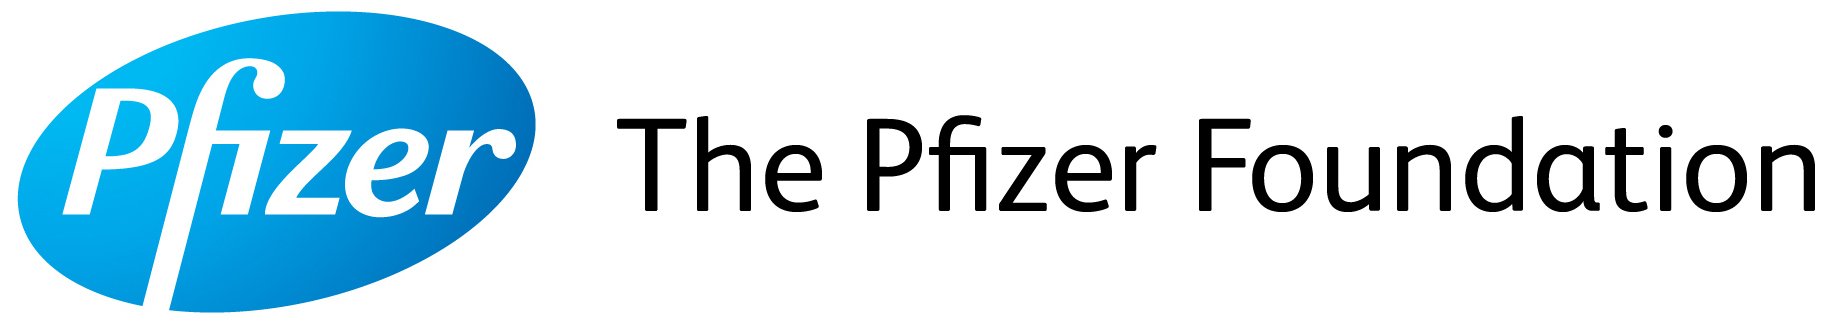 The Pfizer Foundation Invests In 20 Organizations Tackling Infectious Diseases And Antimicrobial Resistance Corpgov